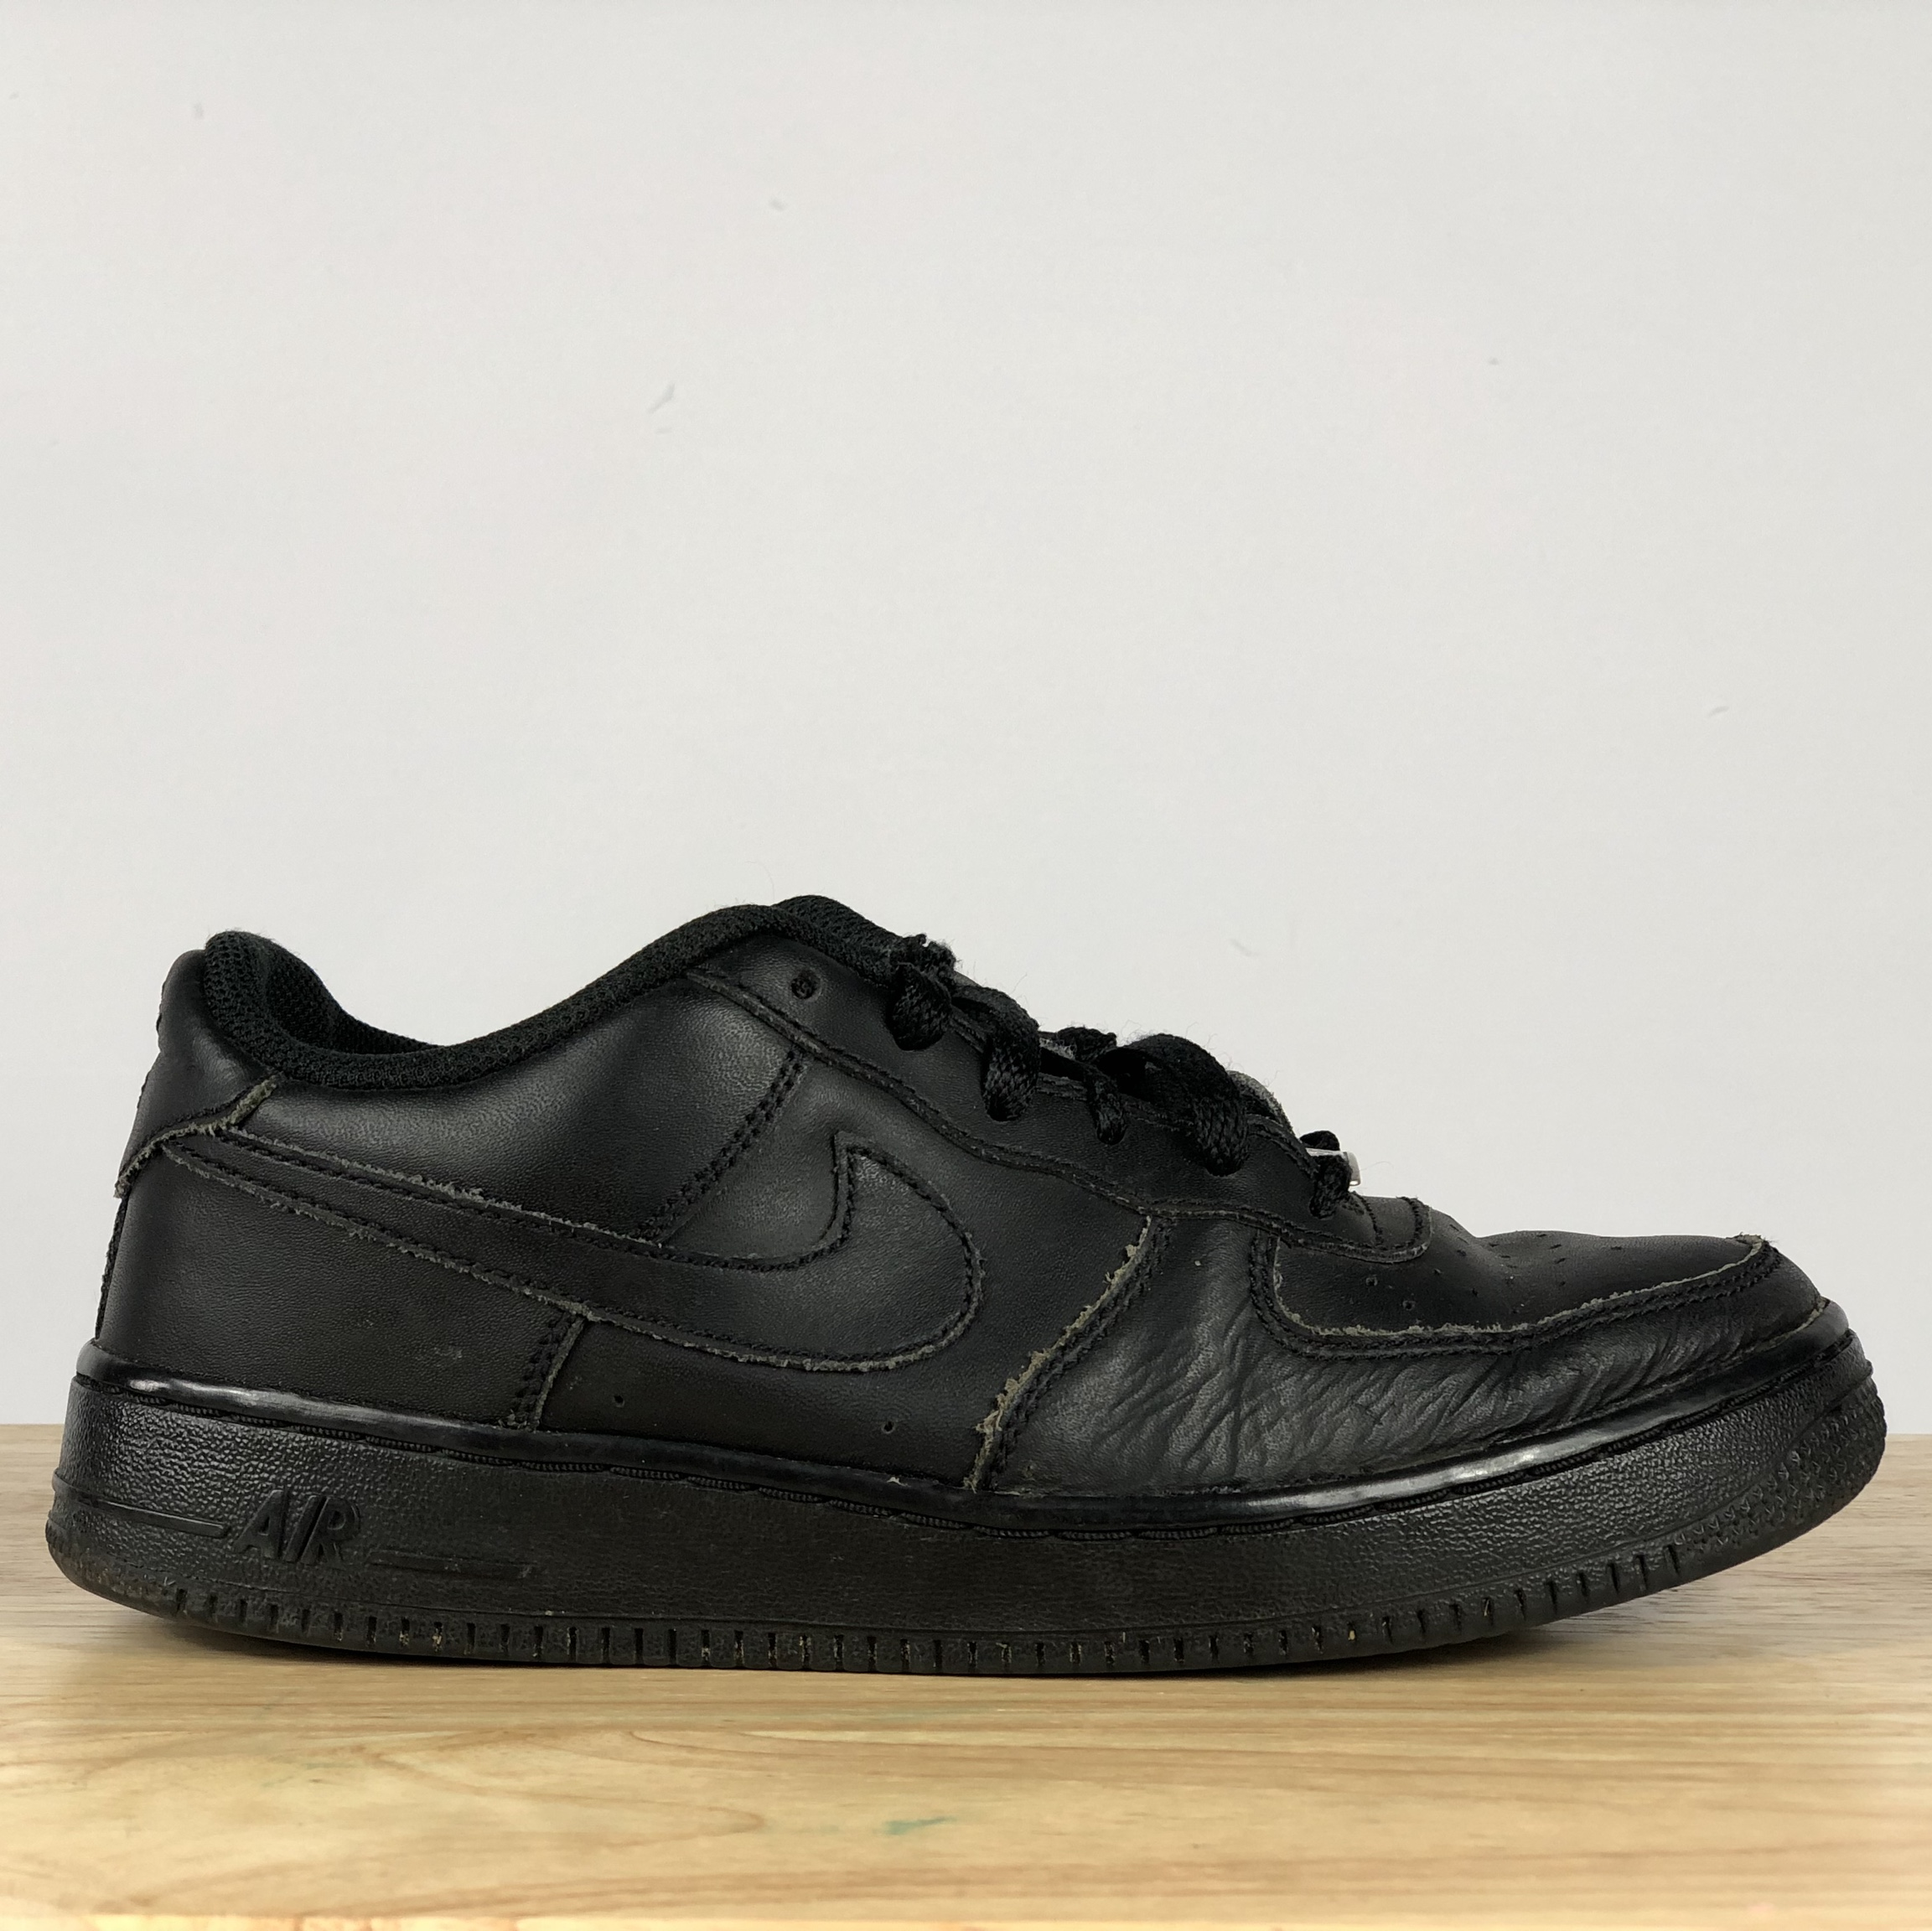 free shipping bc74b 501a7 Nike Air Force 1 women's size 7 AF1 shoe black great... - Depop